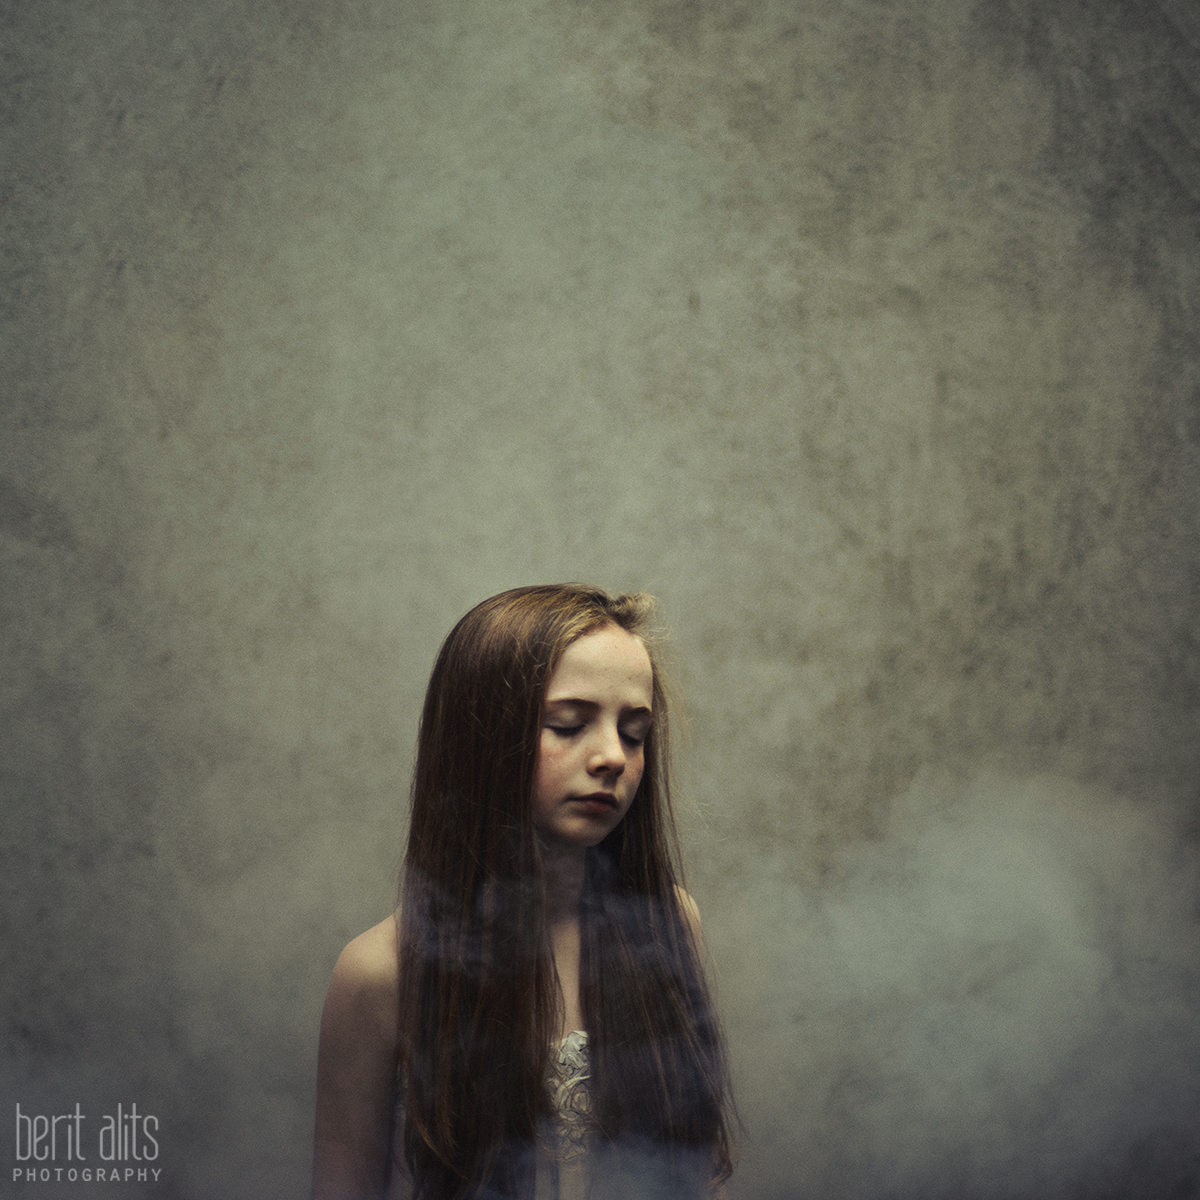 06_Standing_With_The_Wind_creative_portrait_artistic_young_girl_clonmel_tipperary_ireland_photography_photographer_family_different_windy_long_hair_dreamy_nikon_d800_50mm_f1.4_square_format_natural_light_pose_posing_smoke